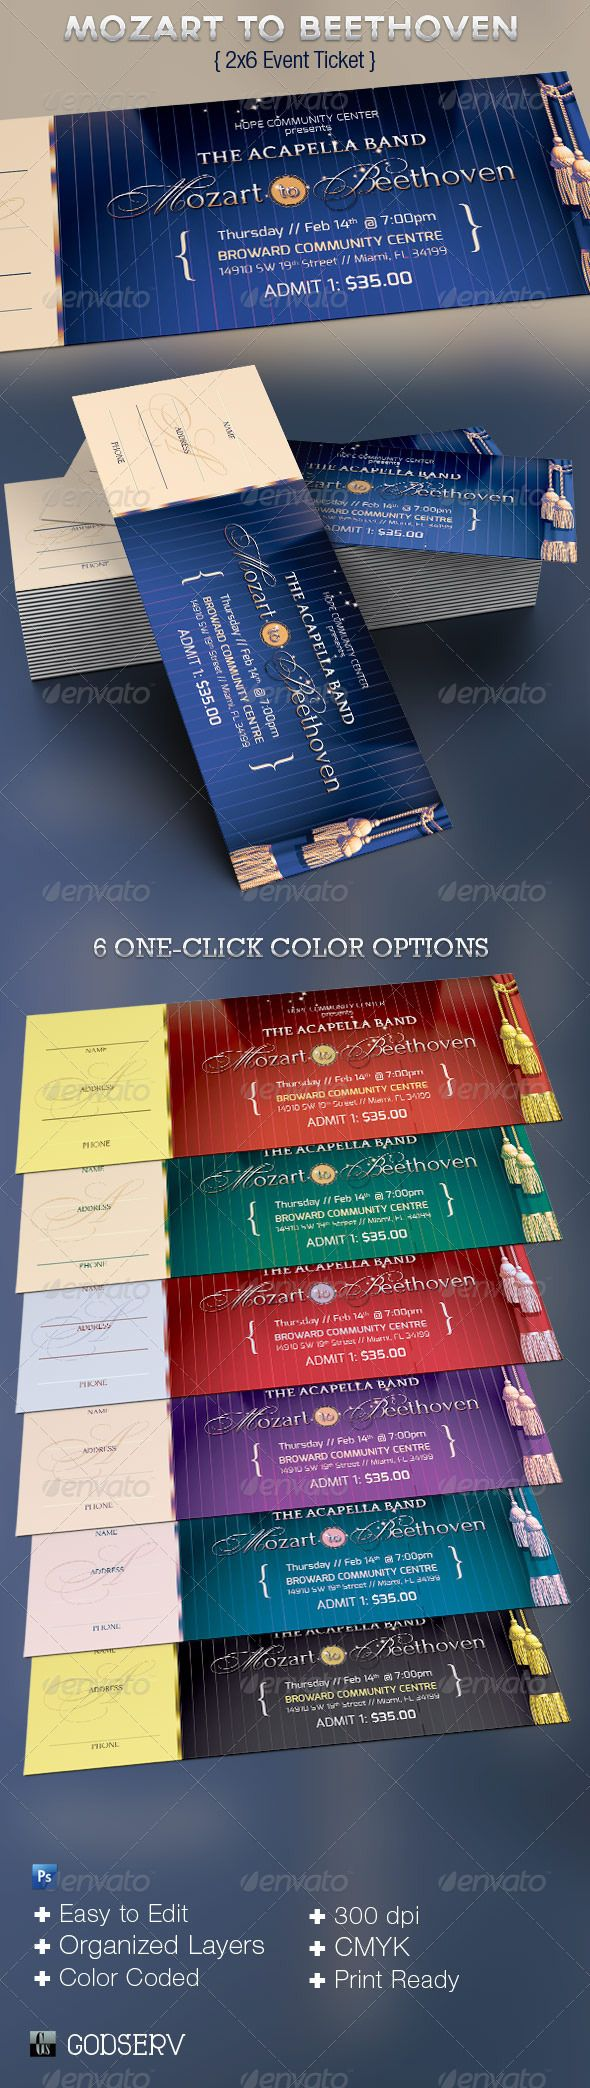 Elegant multipurpose event ticket – Event Ticket Ideas